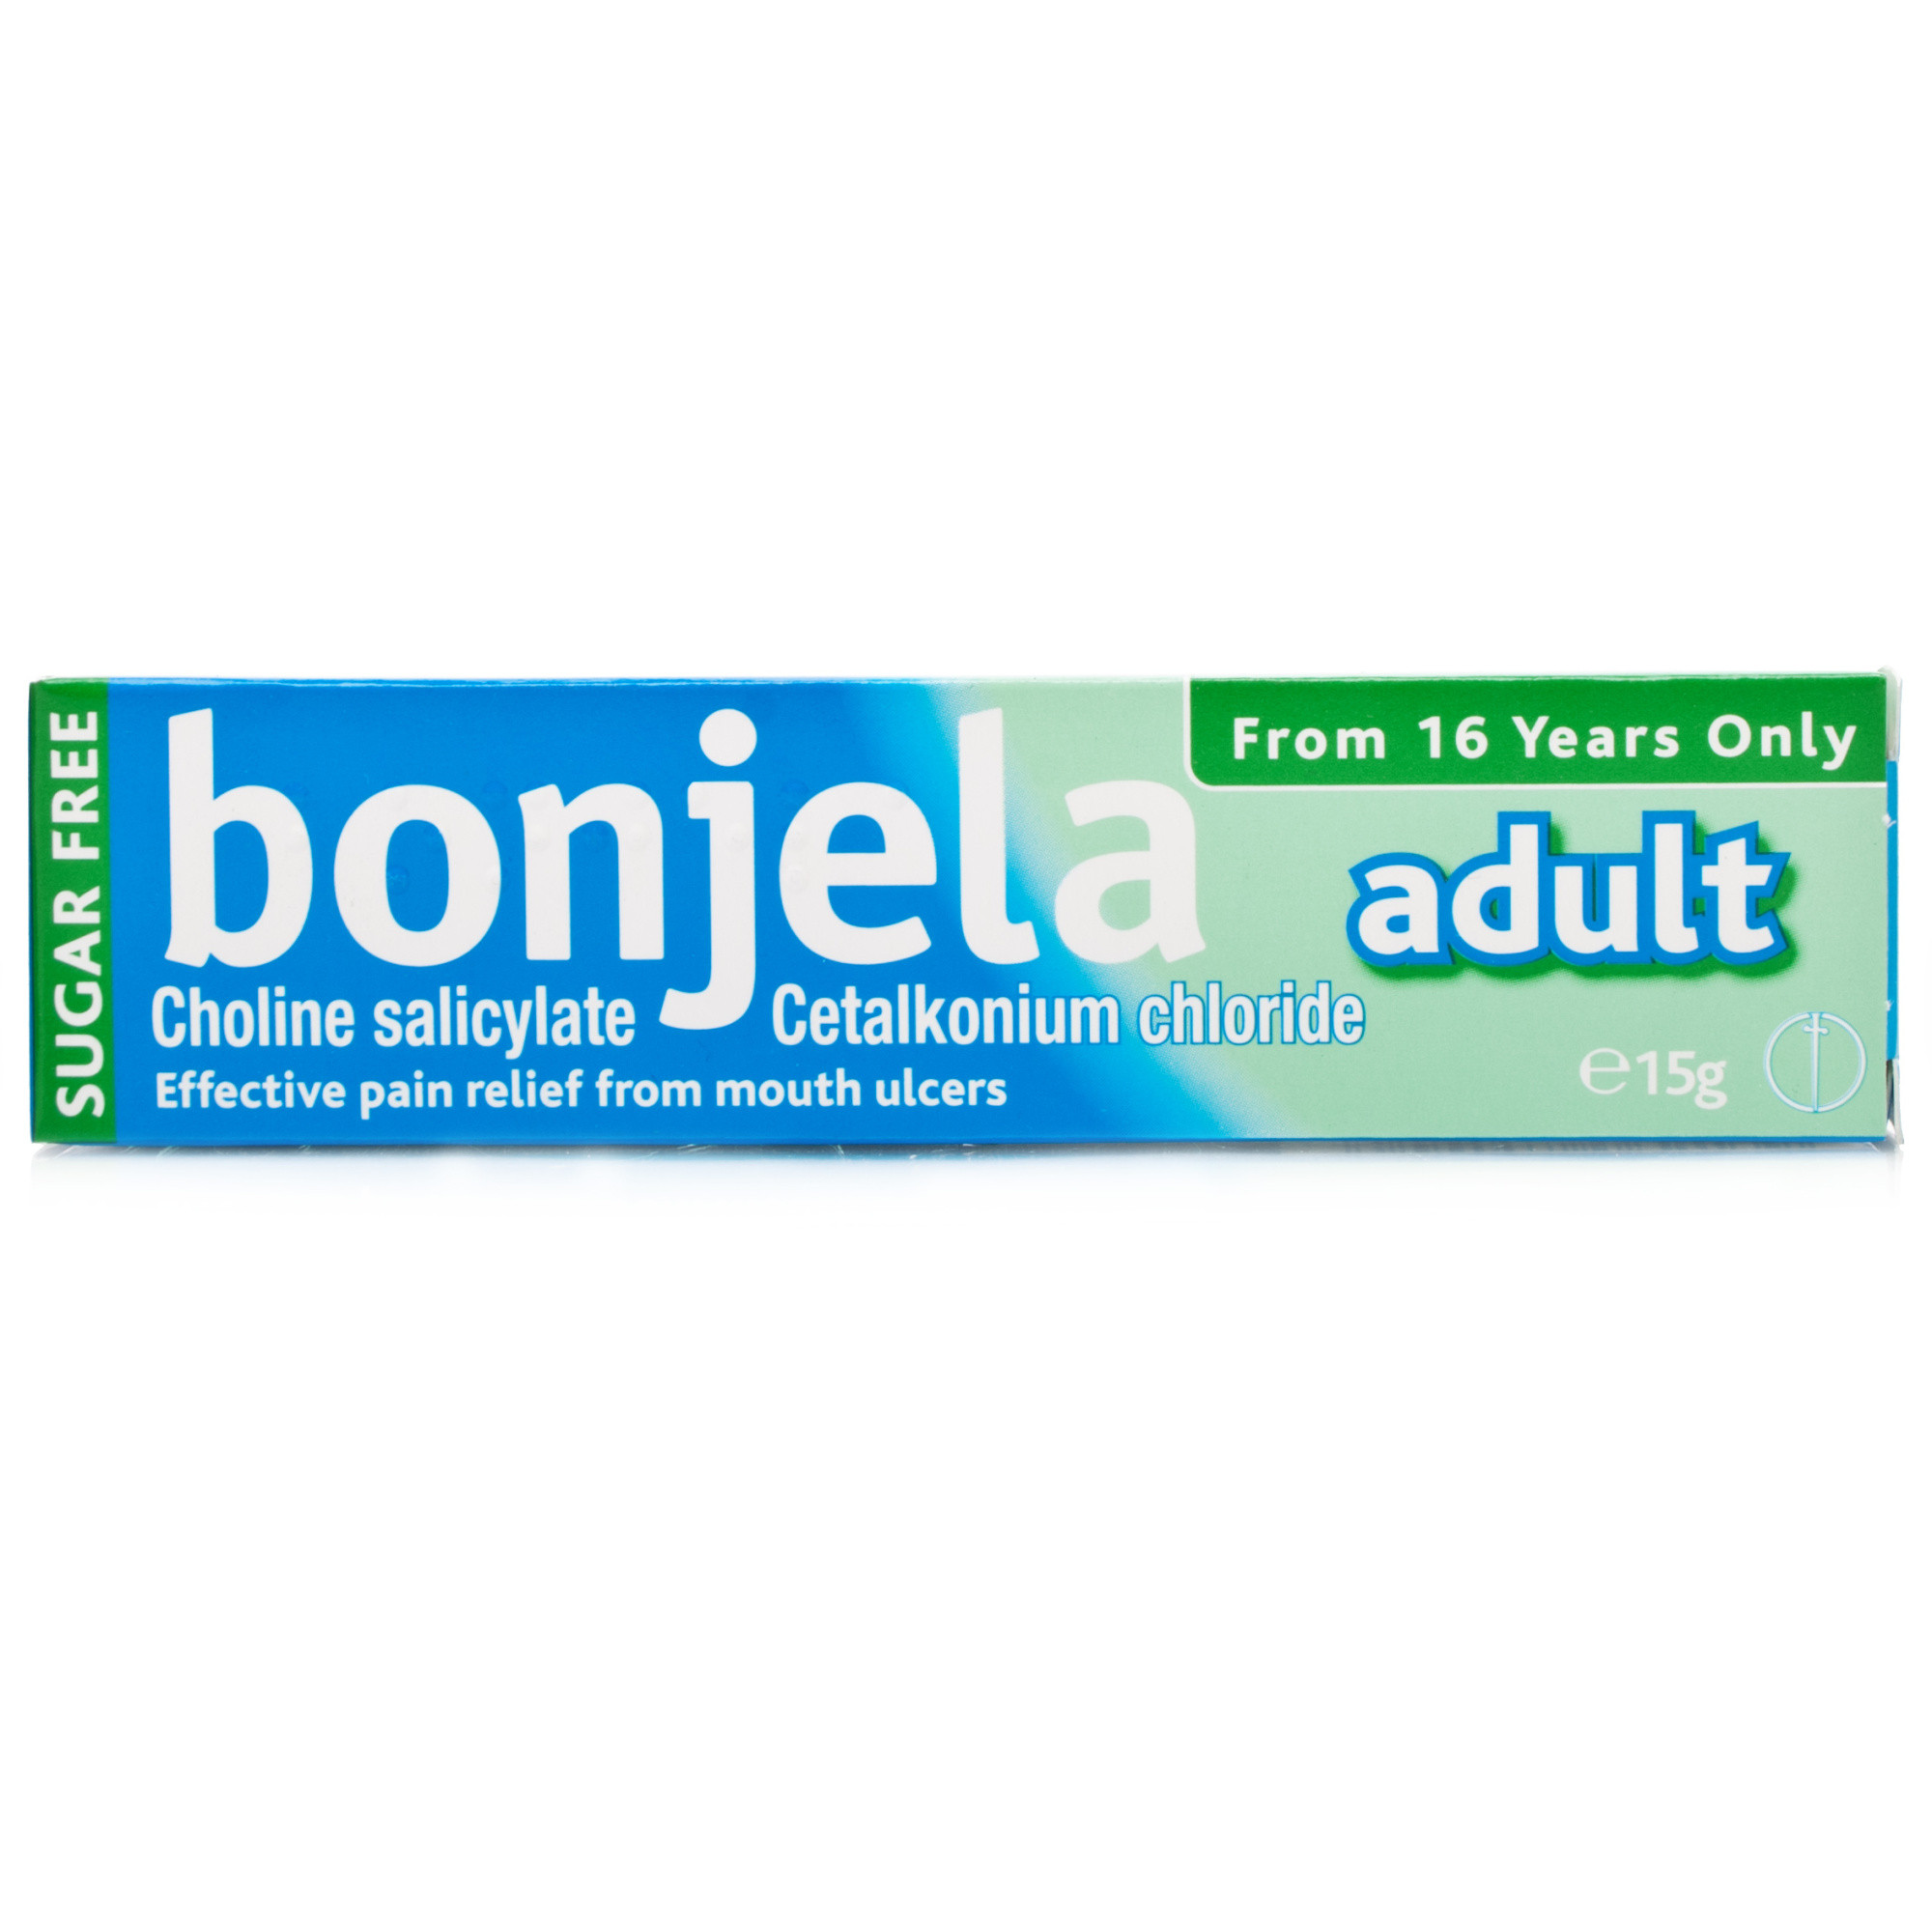 Bonjela Gel Original